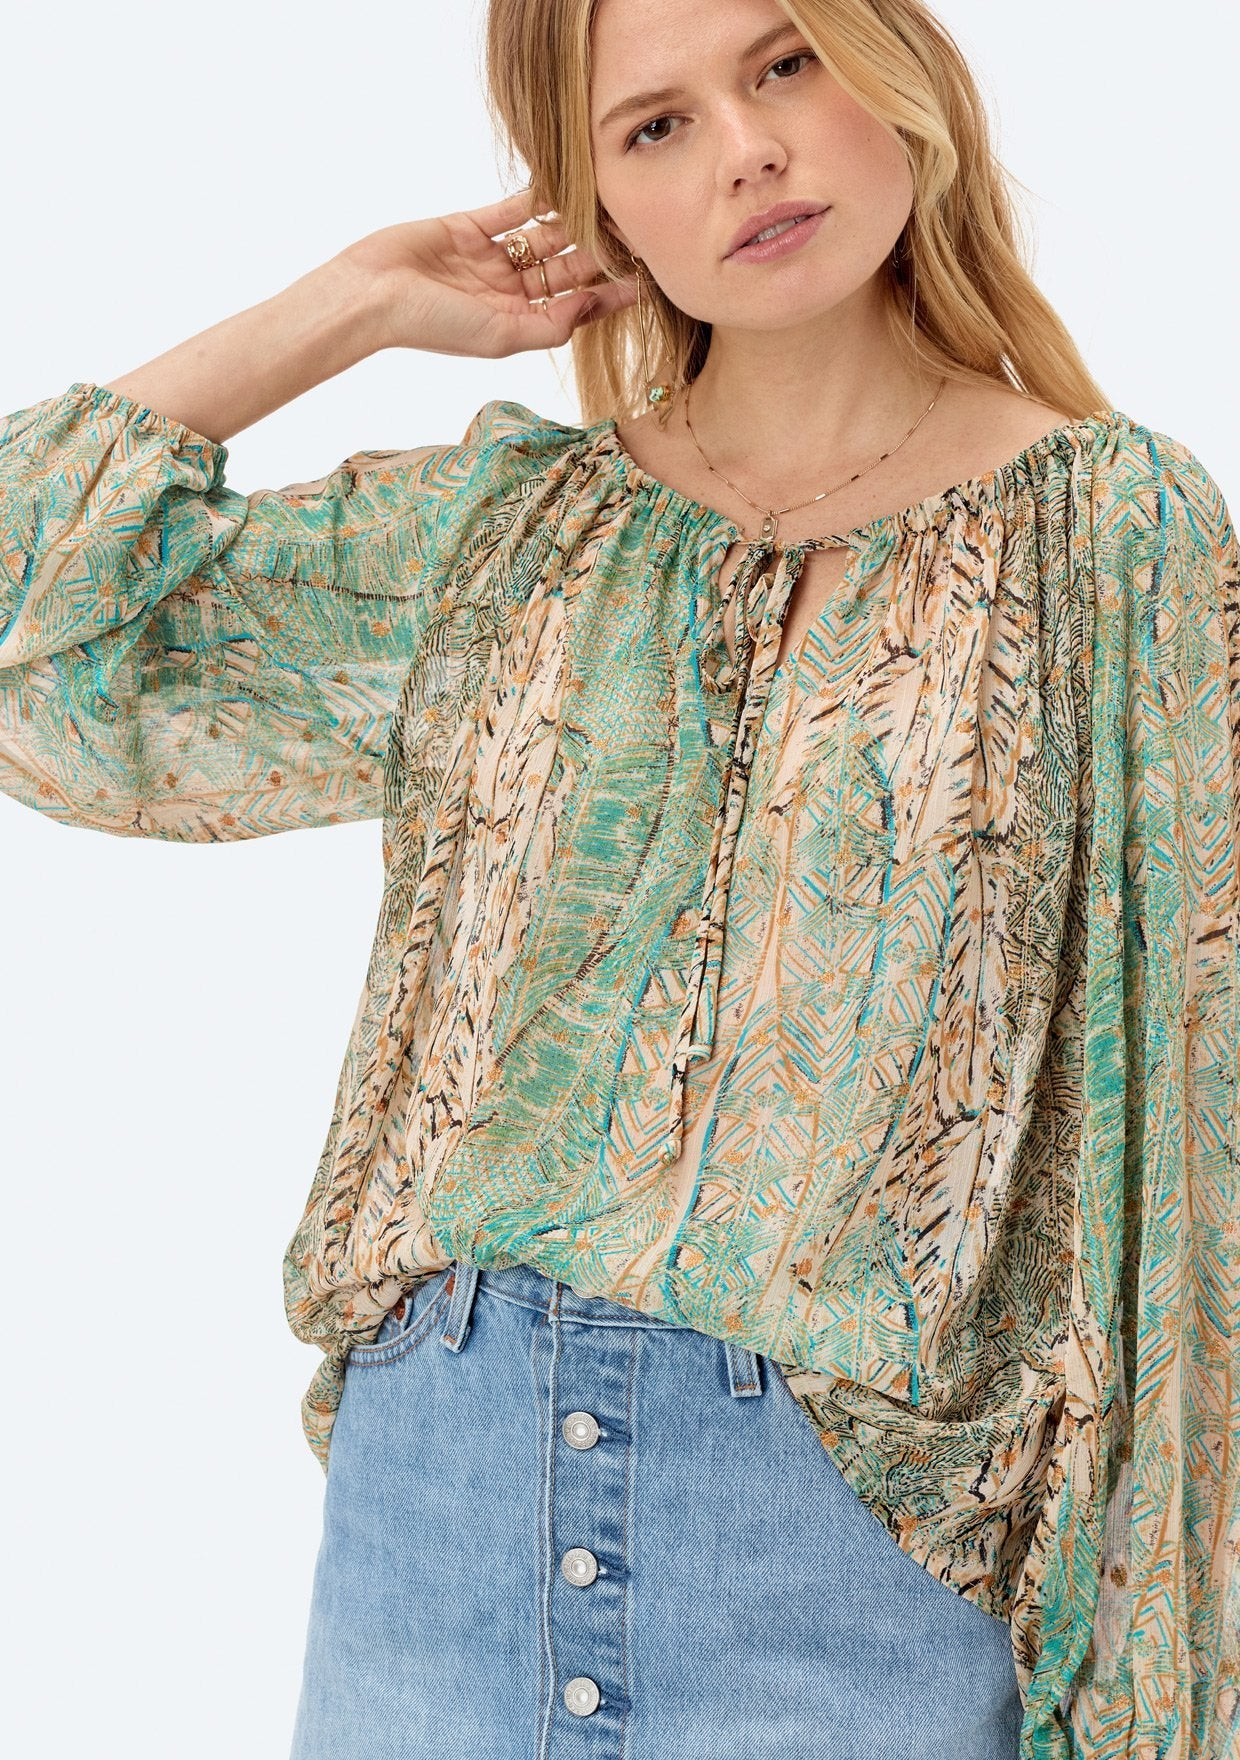 [Color: Turquoise] Lovestitch printed, long sleeve peasant top with shirred neckline and tie detail.